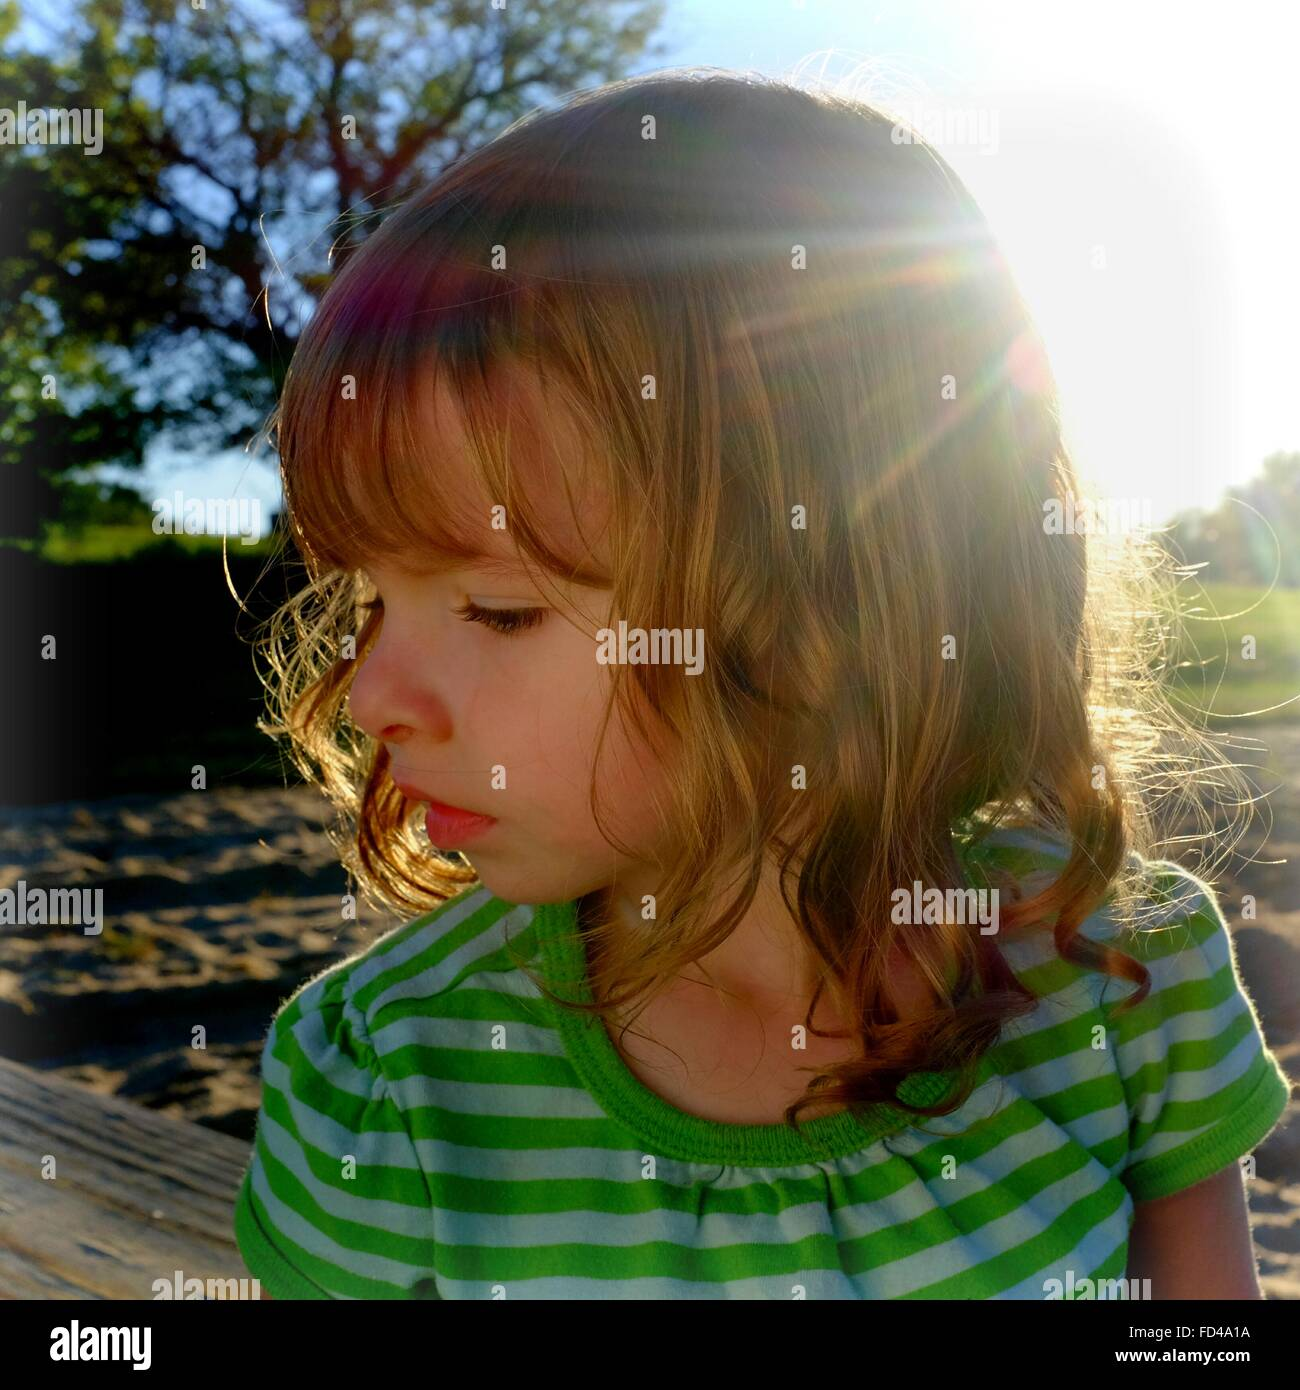 Close-Up Of Cute Girl In Park - Stock Image